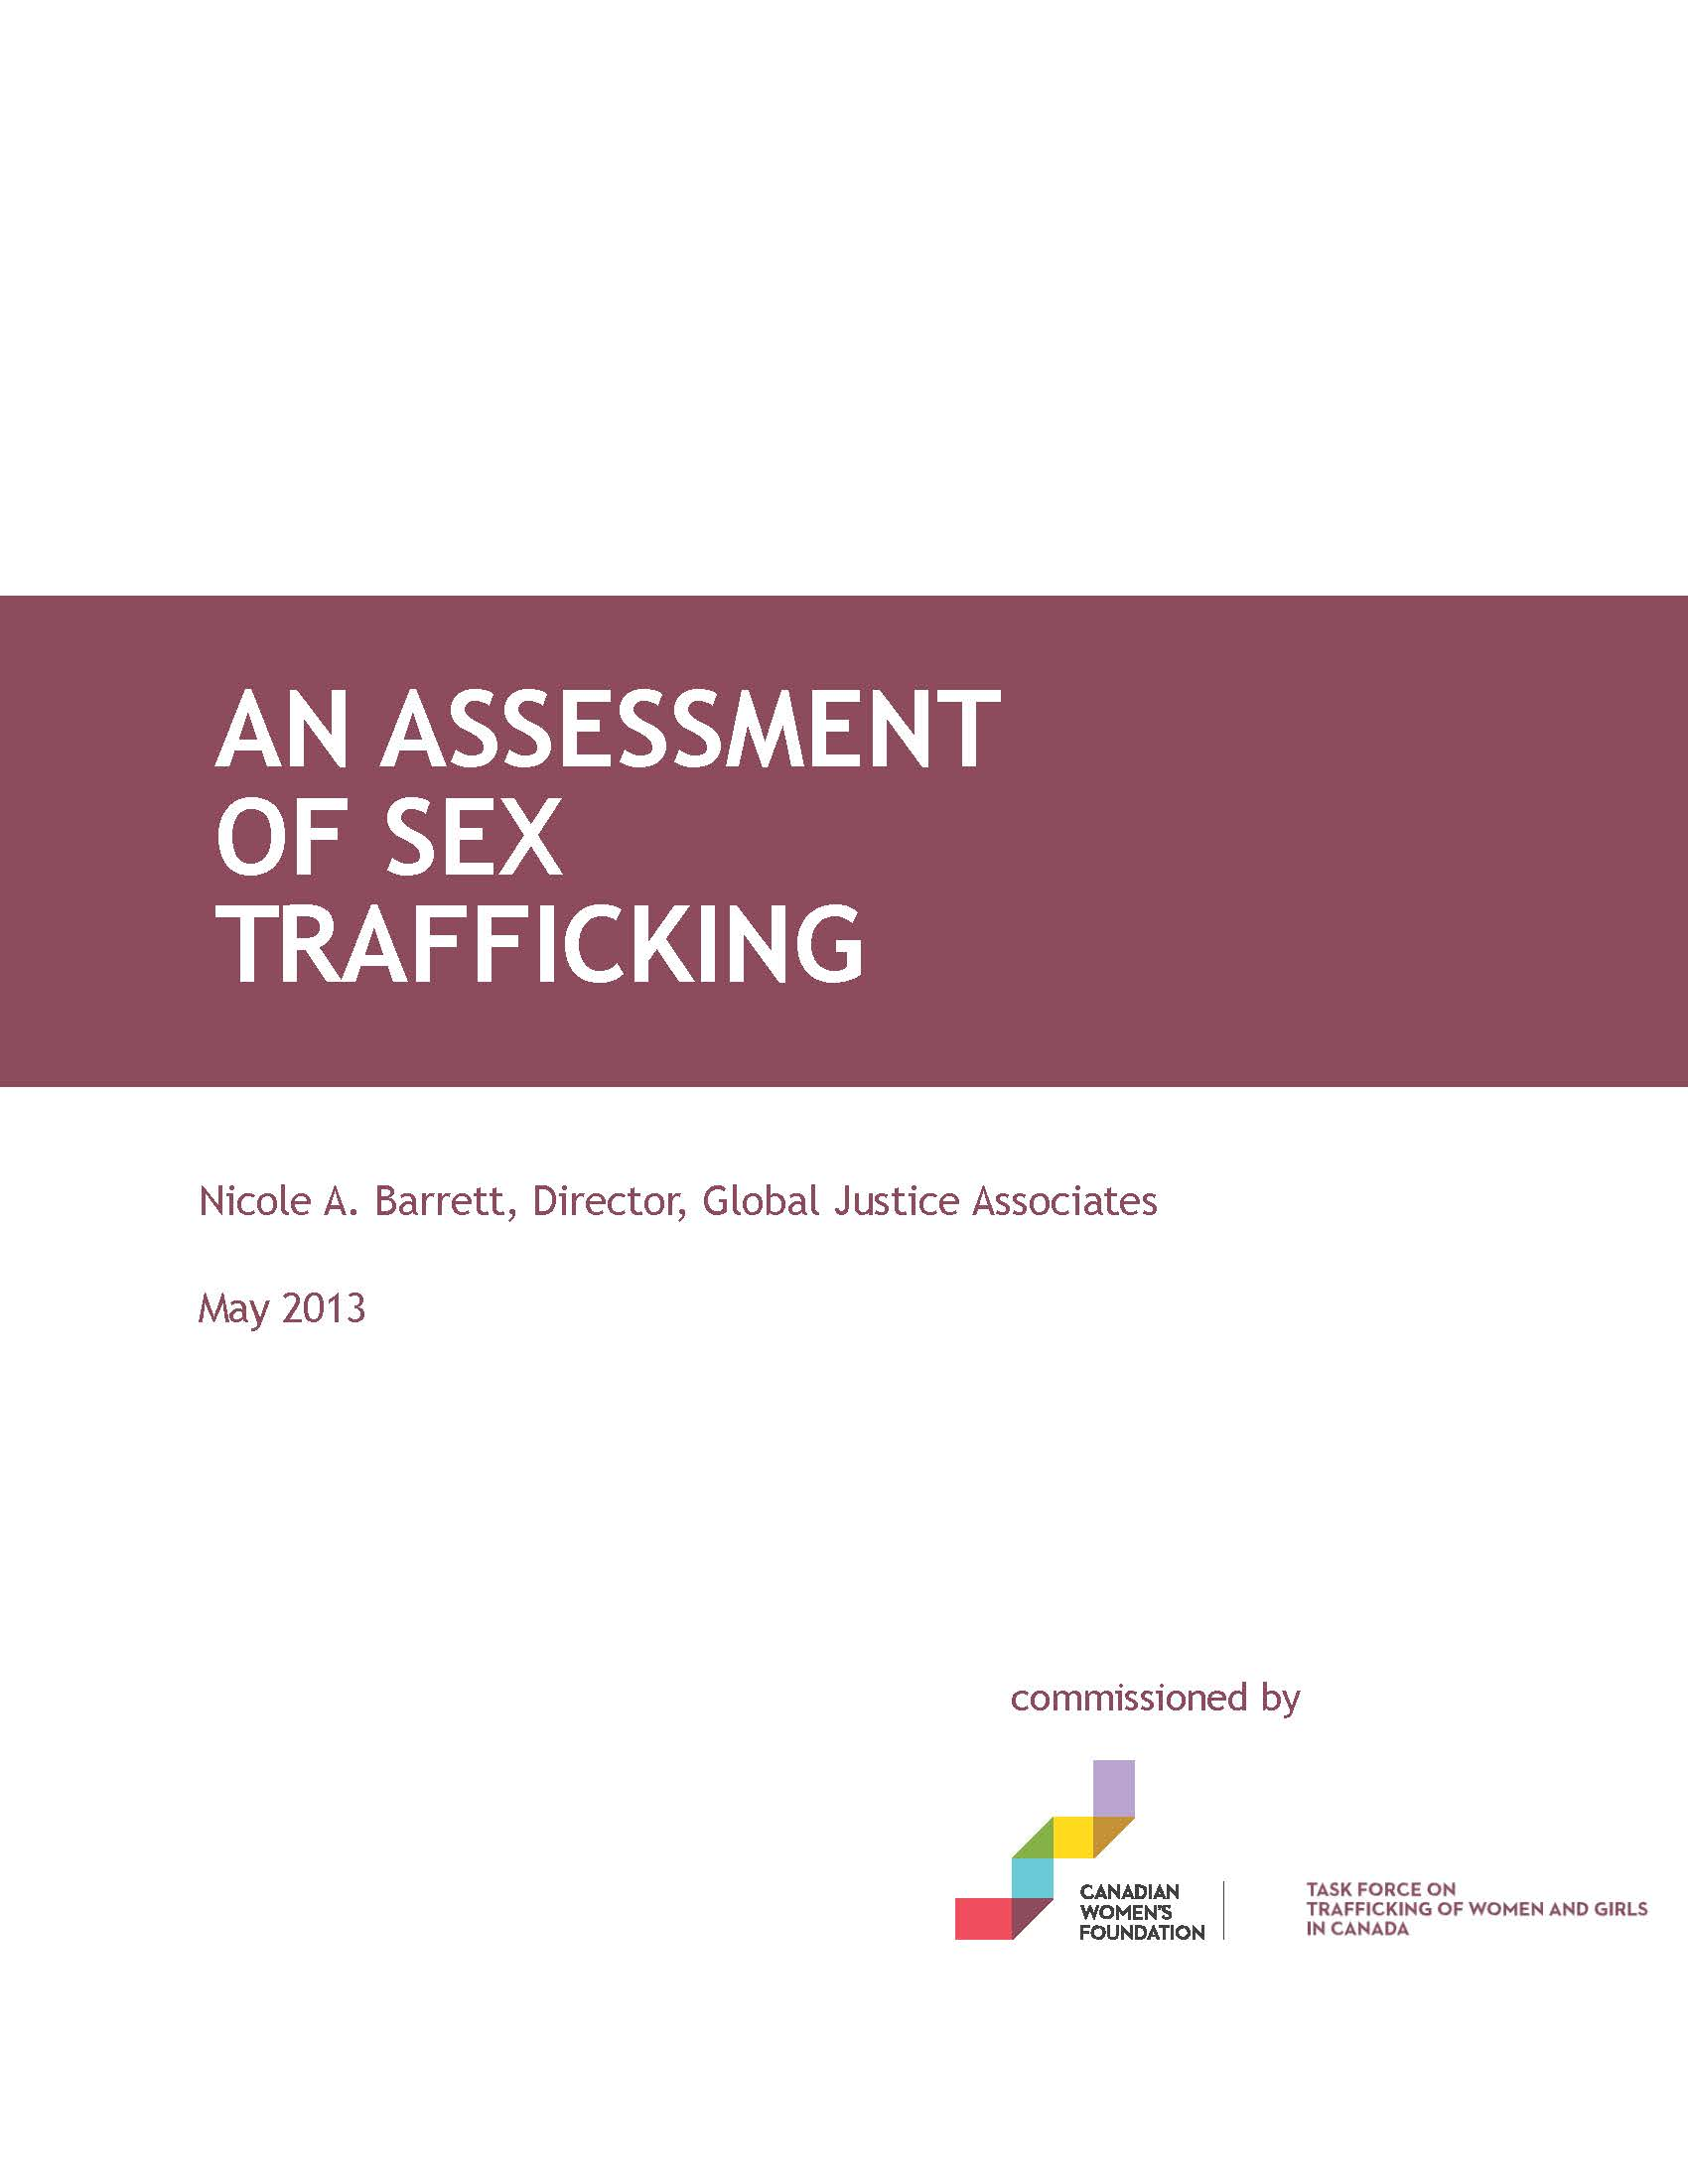 An Assessment of Sex Trafficking, 2013